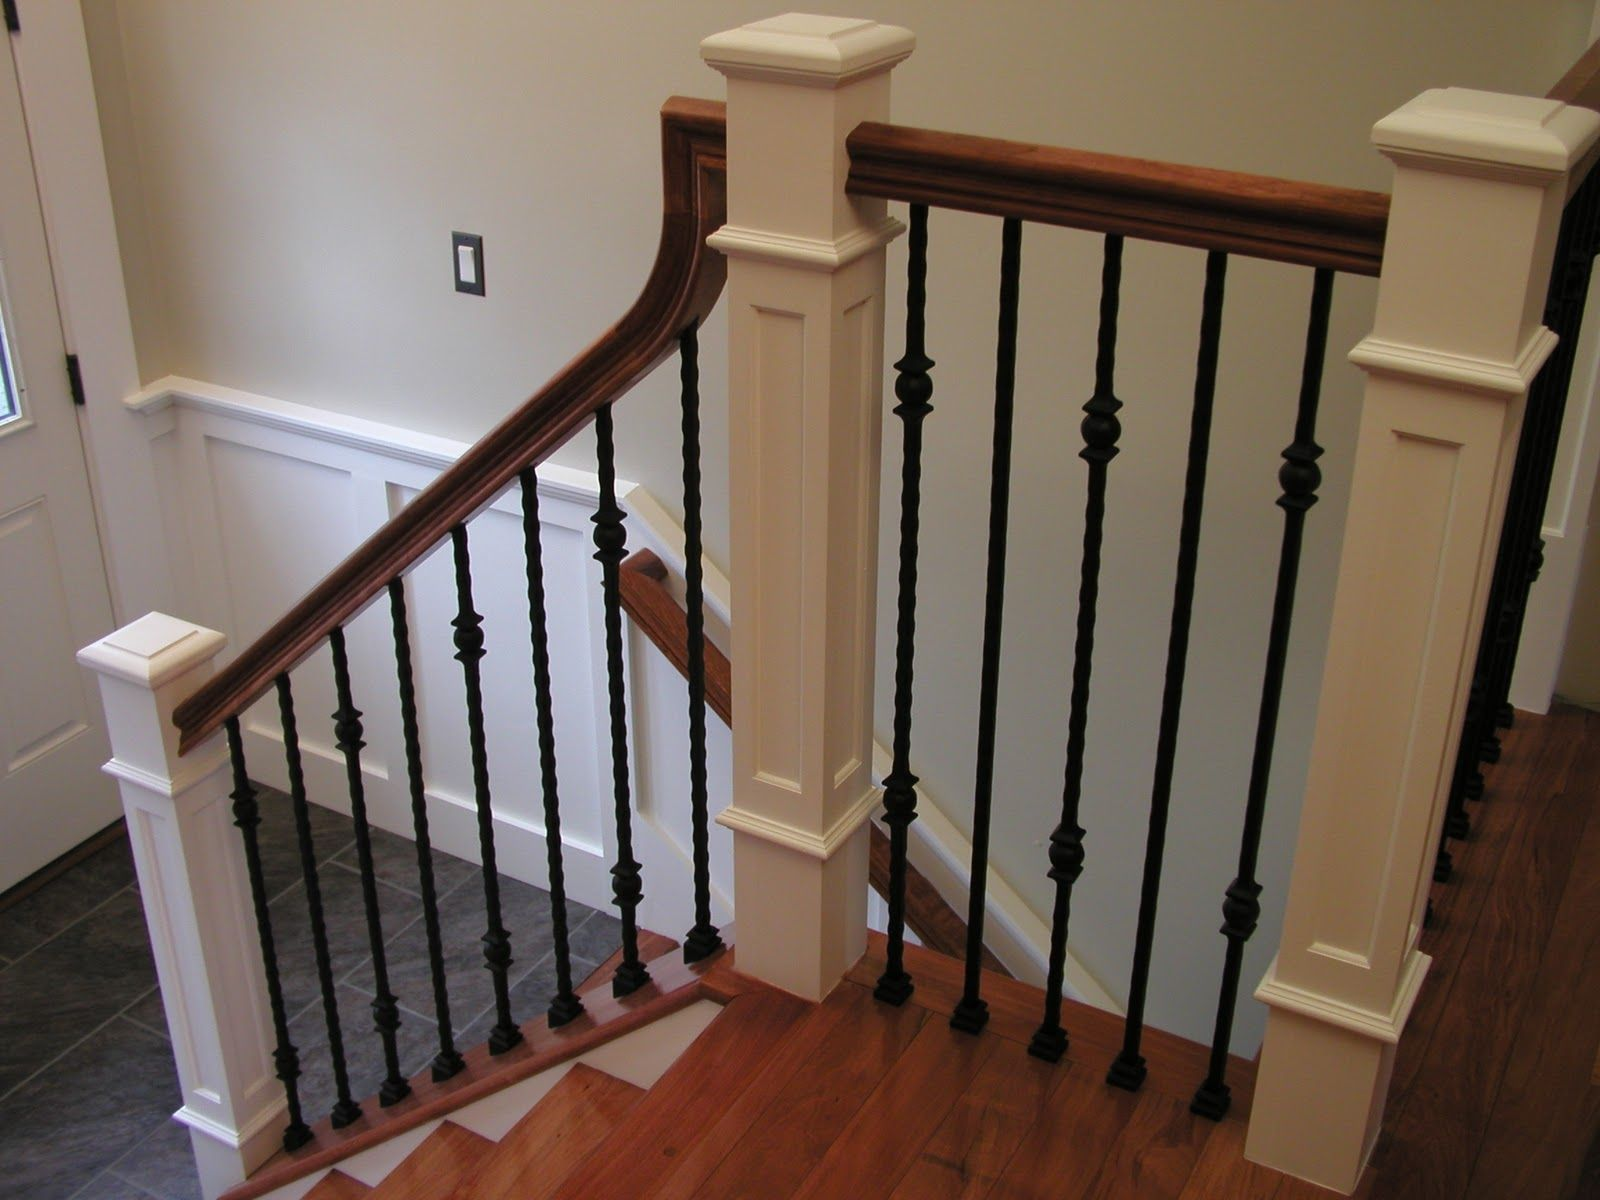 Best Staircase Spindles Home Depot Wrought Iron Balusters 400 x 300